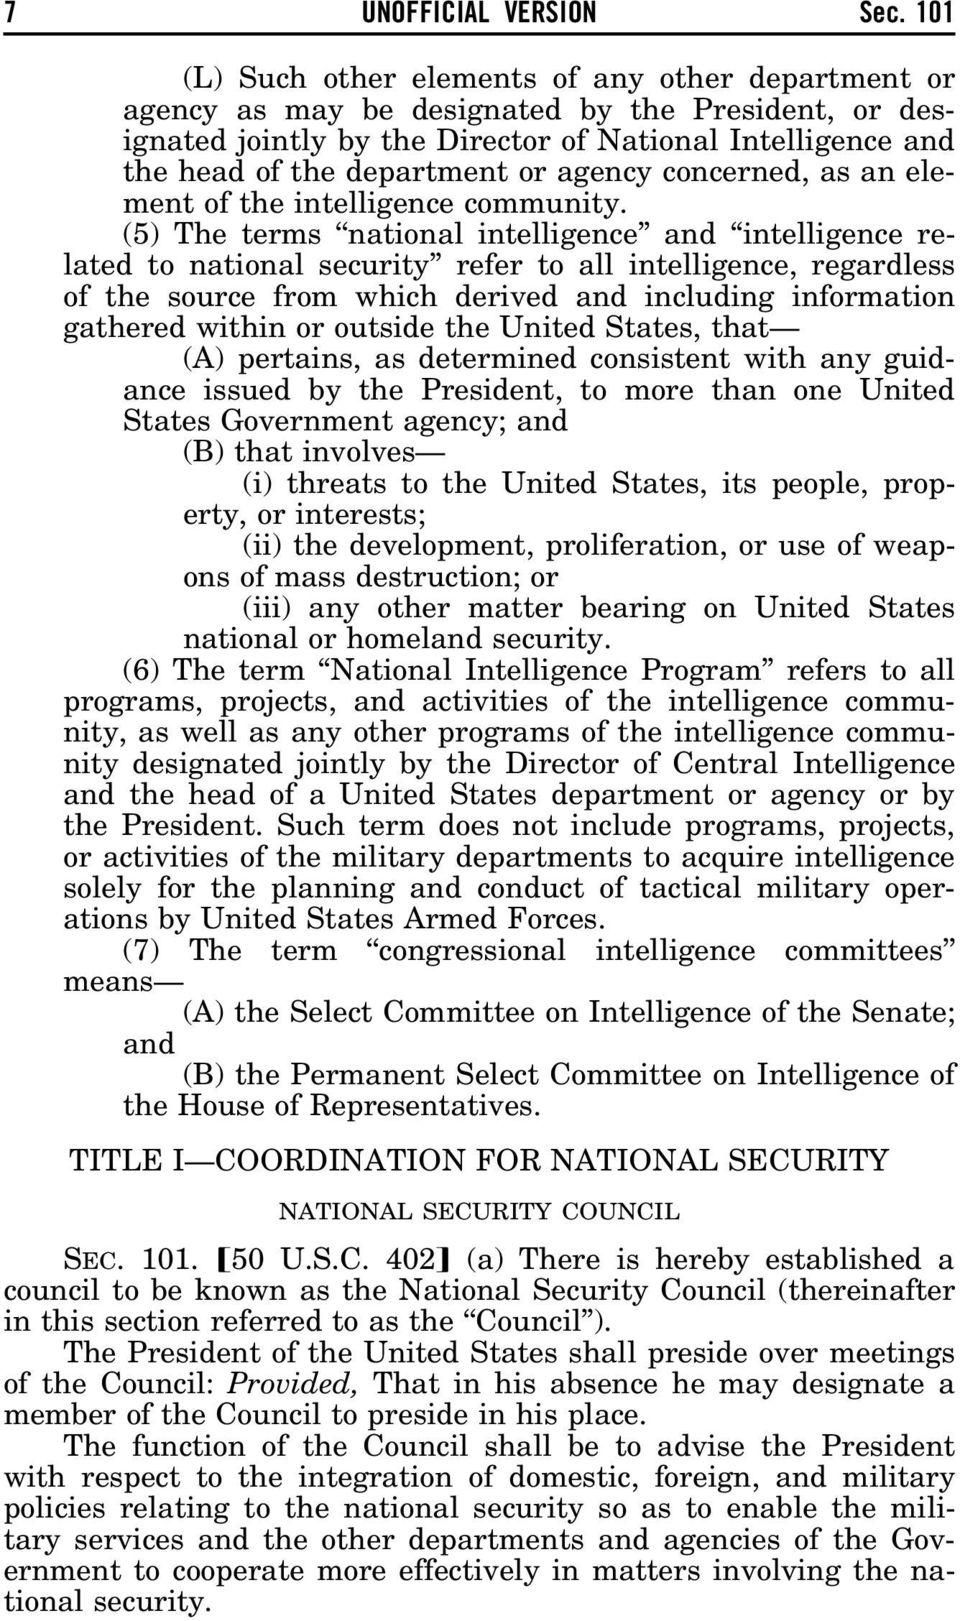 agency concerned, as an element of the intelligence community.